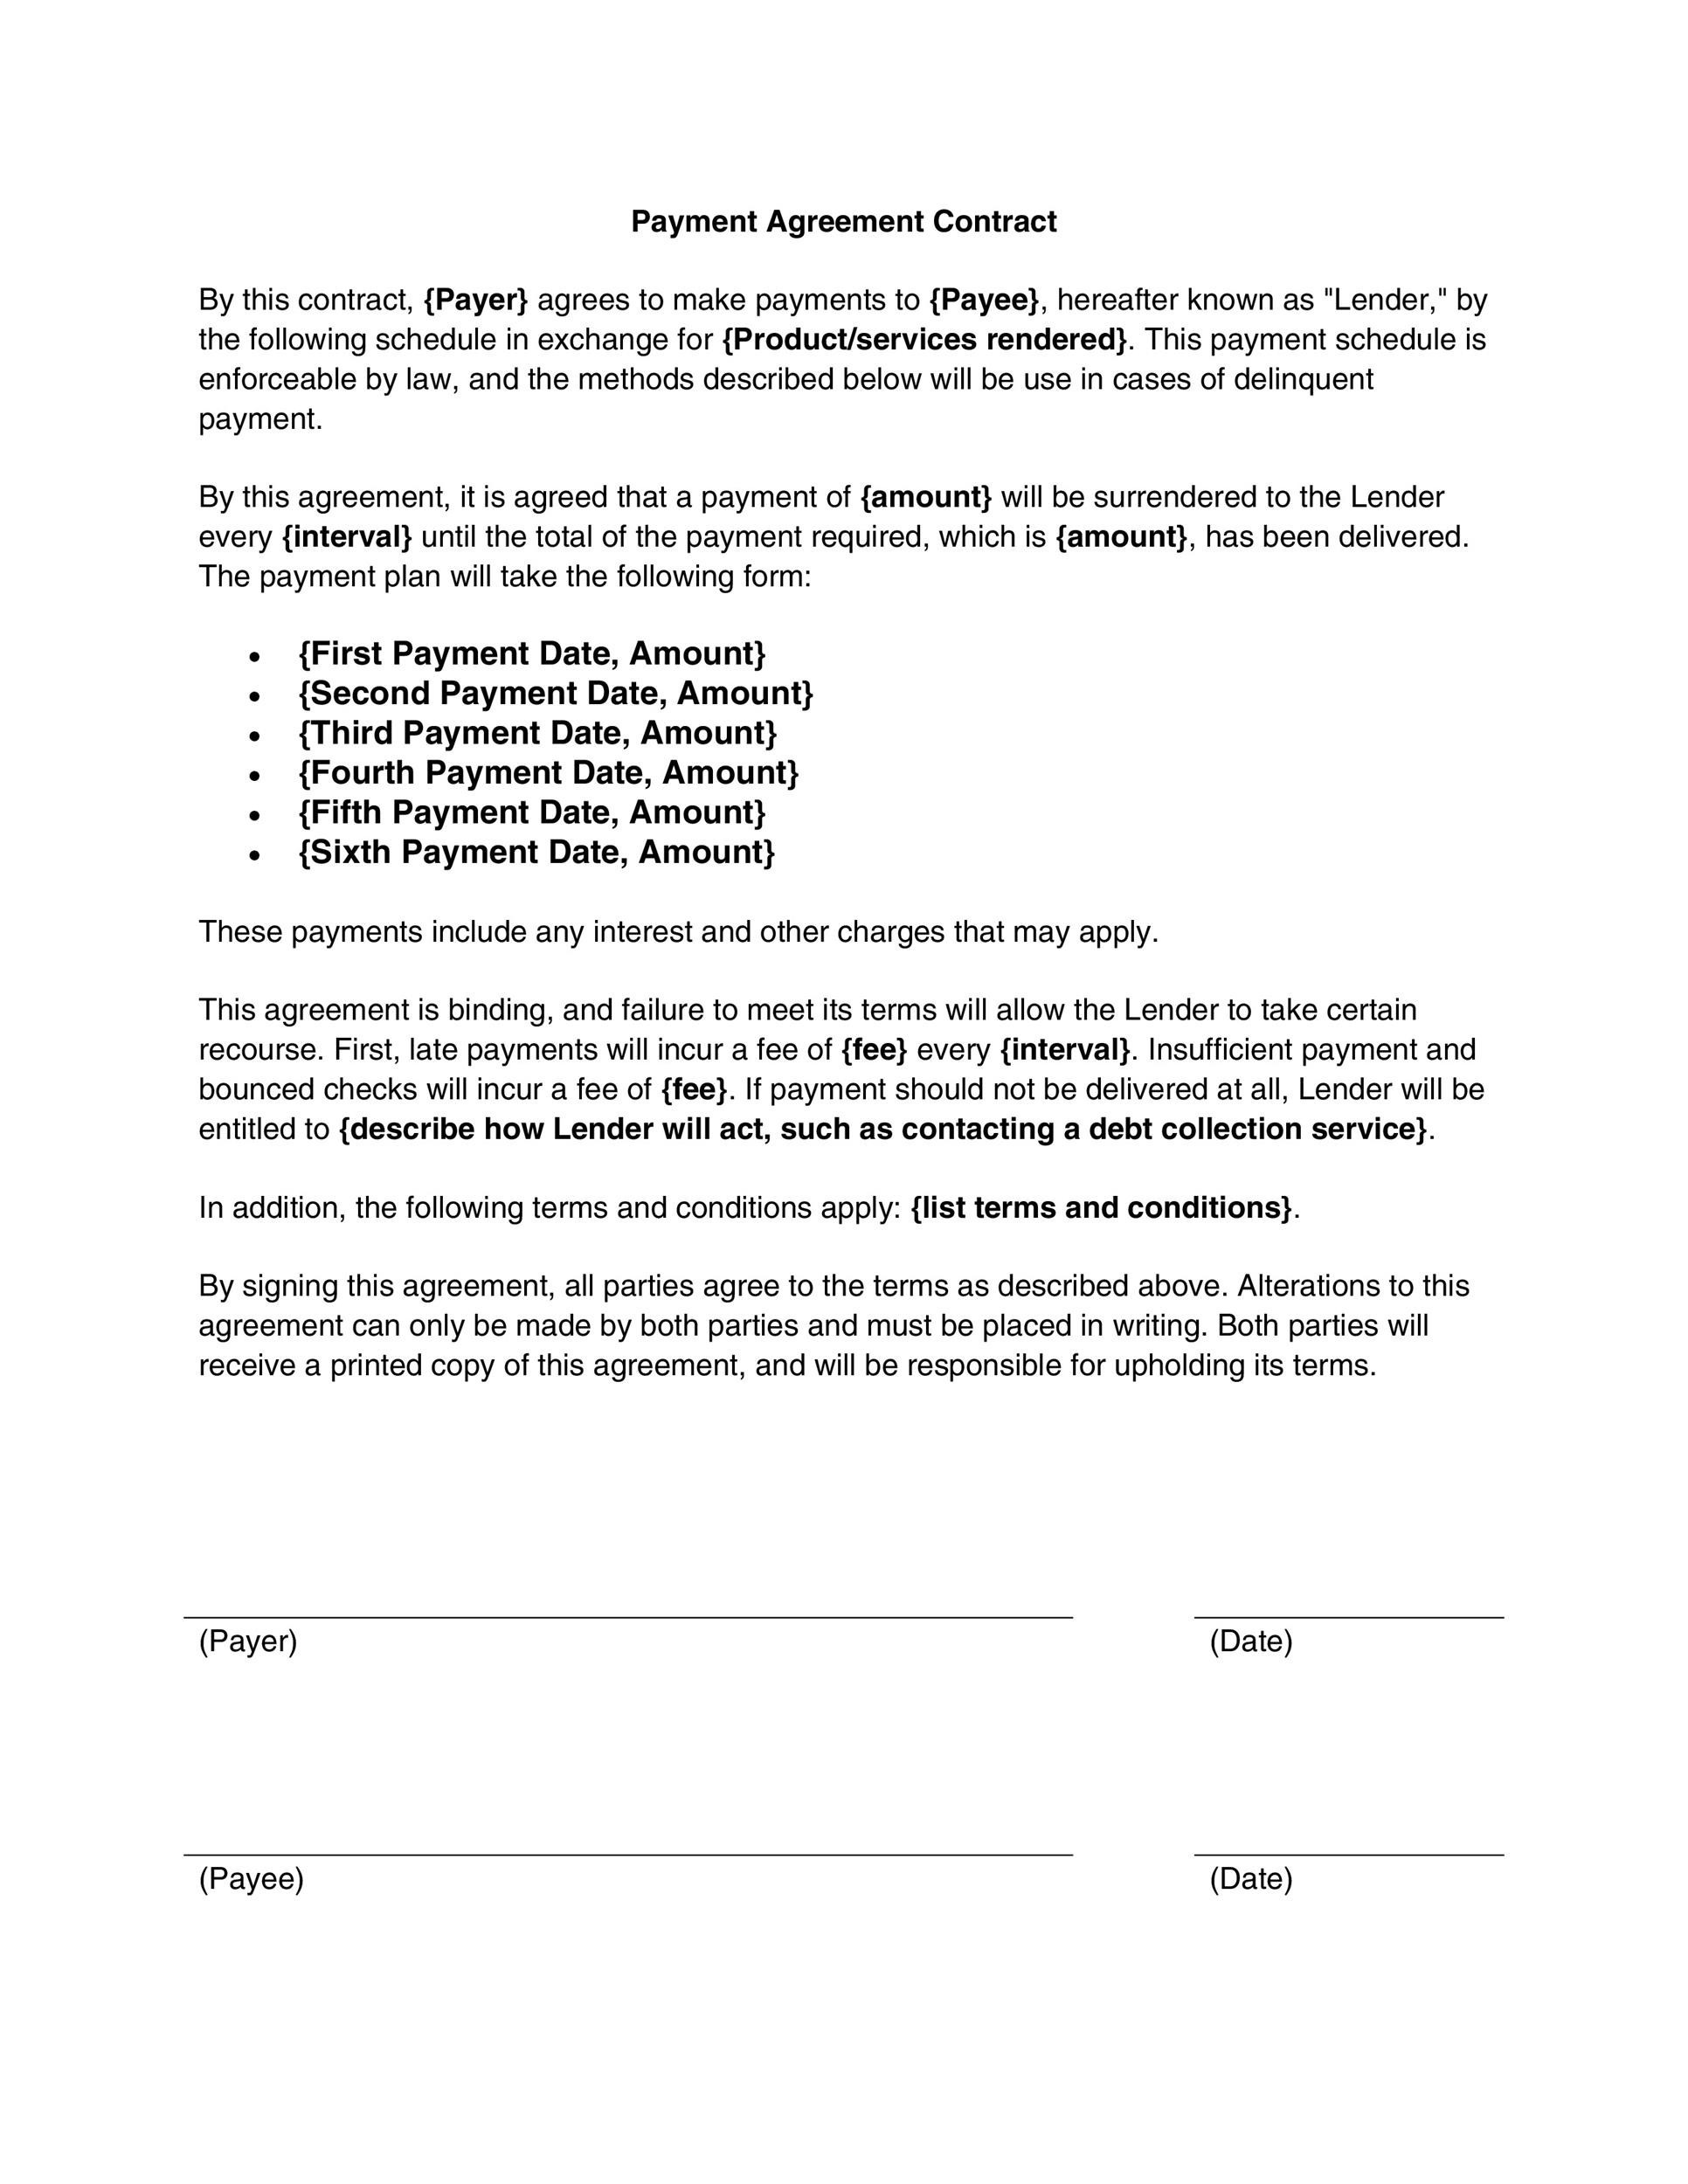 Payment Agreement Contract. Contract Template 02 40 Great Contract